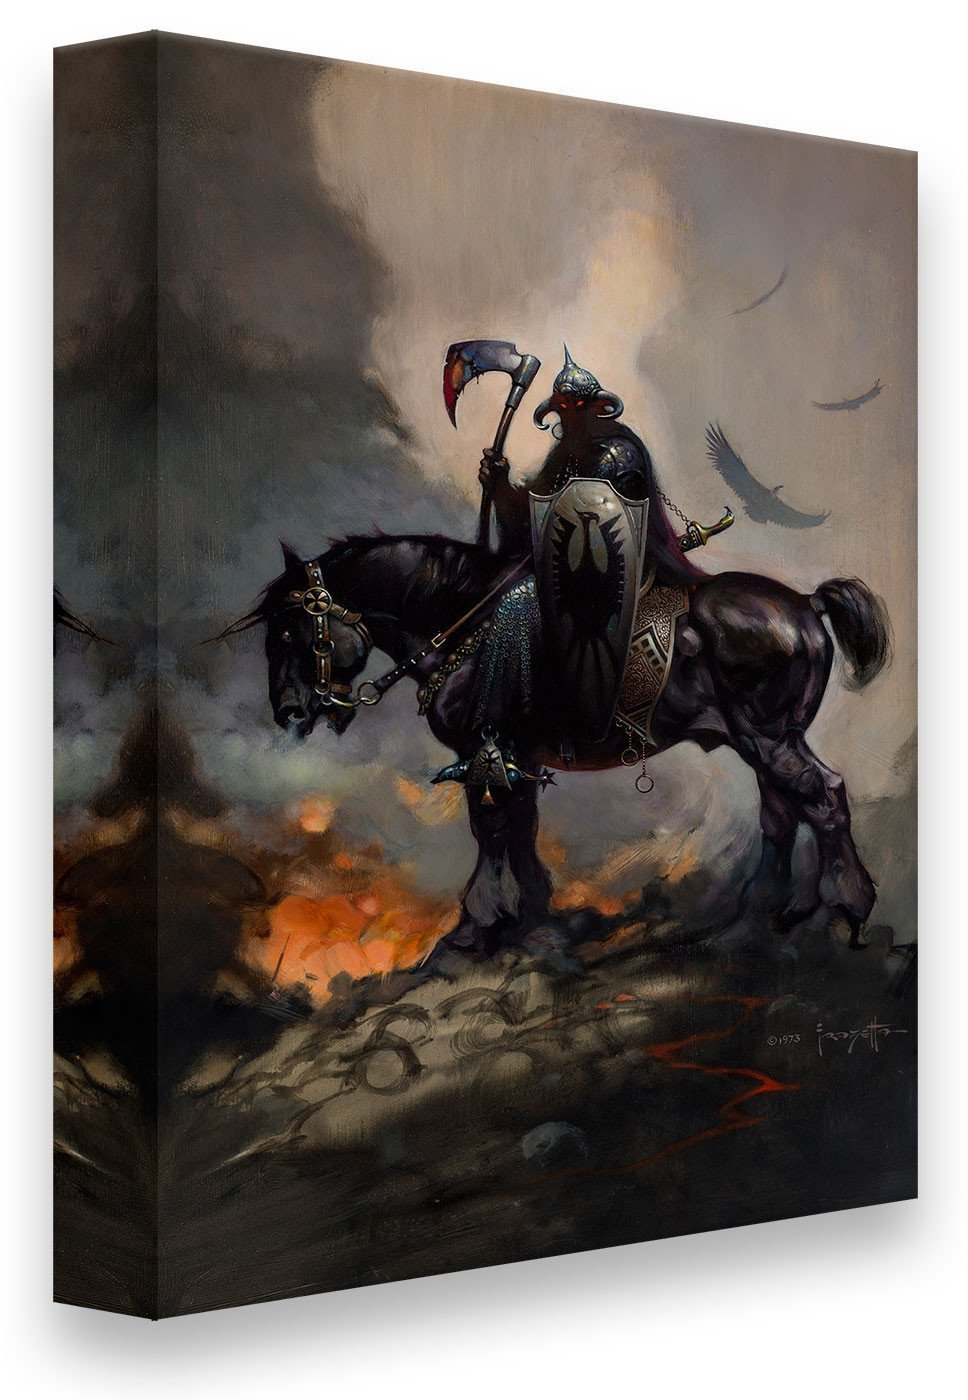 FrazettaGirls Art Print Canvas / Stretched on wooden bar / 16x20 Death Dealer I Print